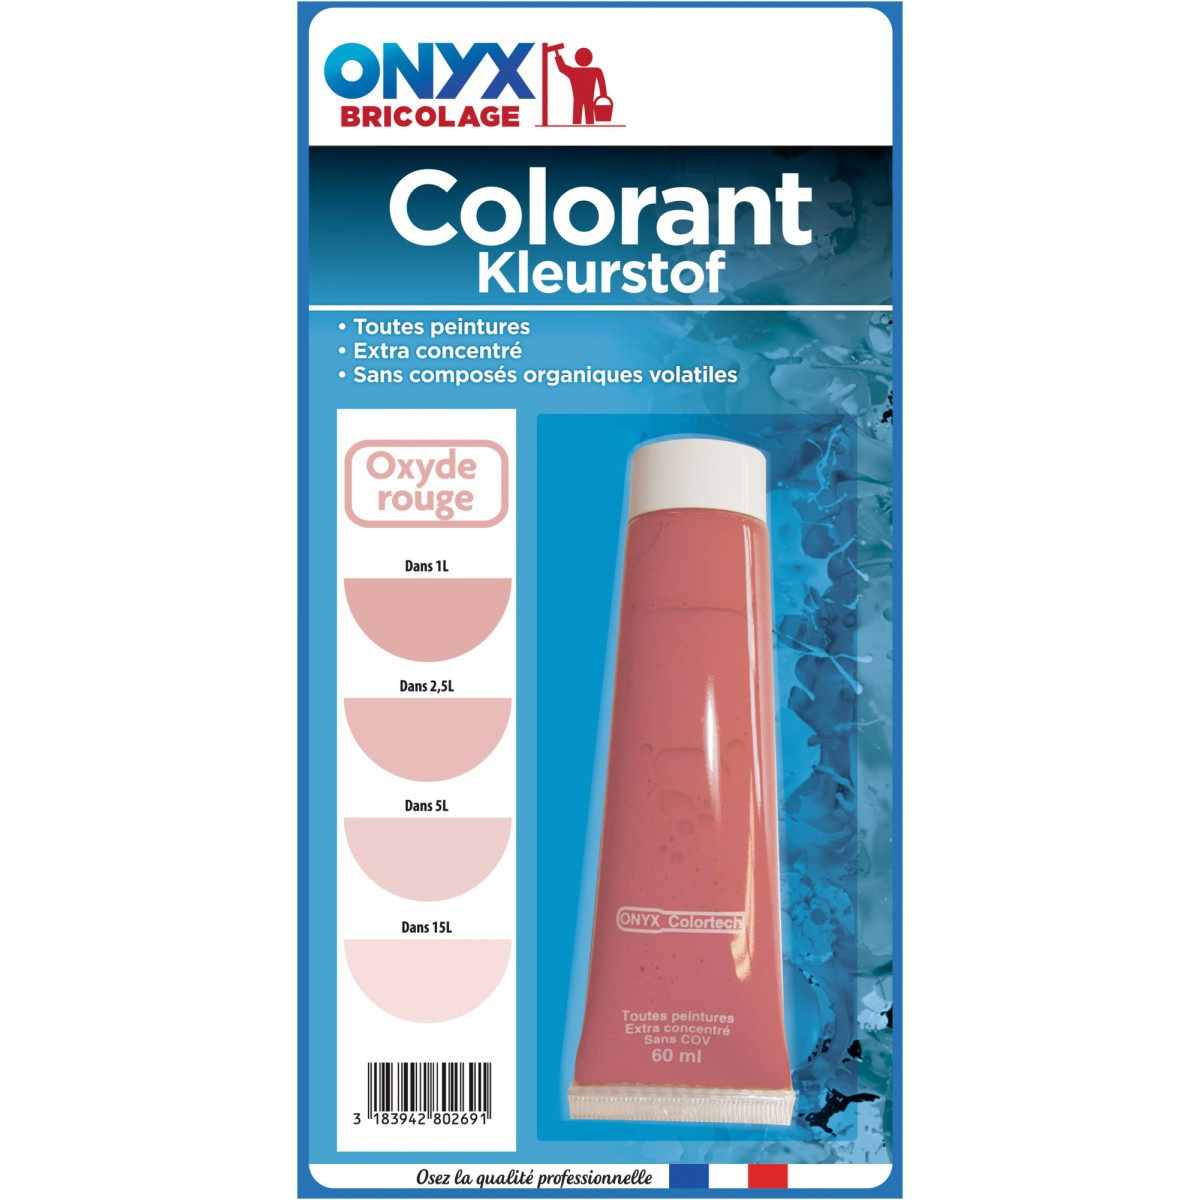 Colorant universel 60 ml Onyx - Oxyde rouge